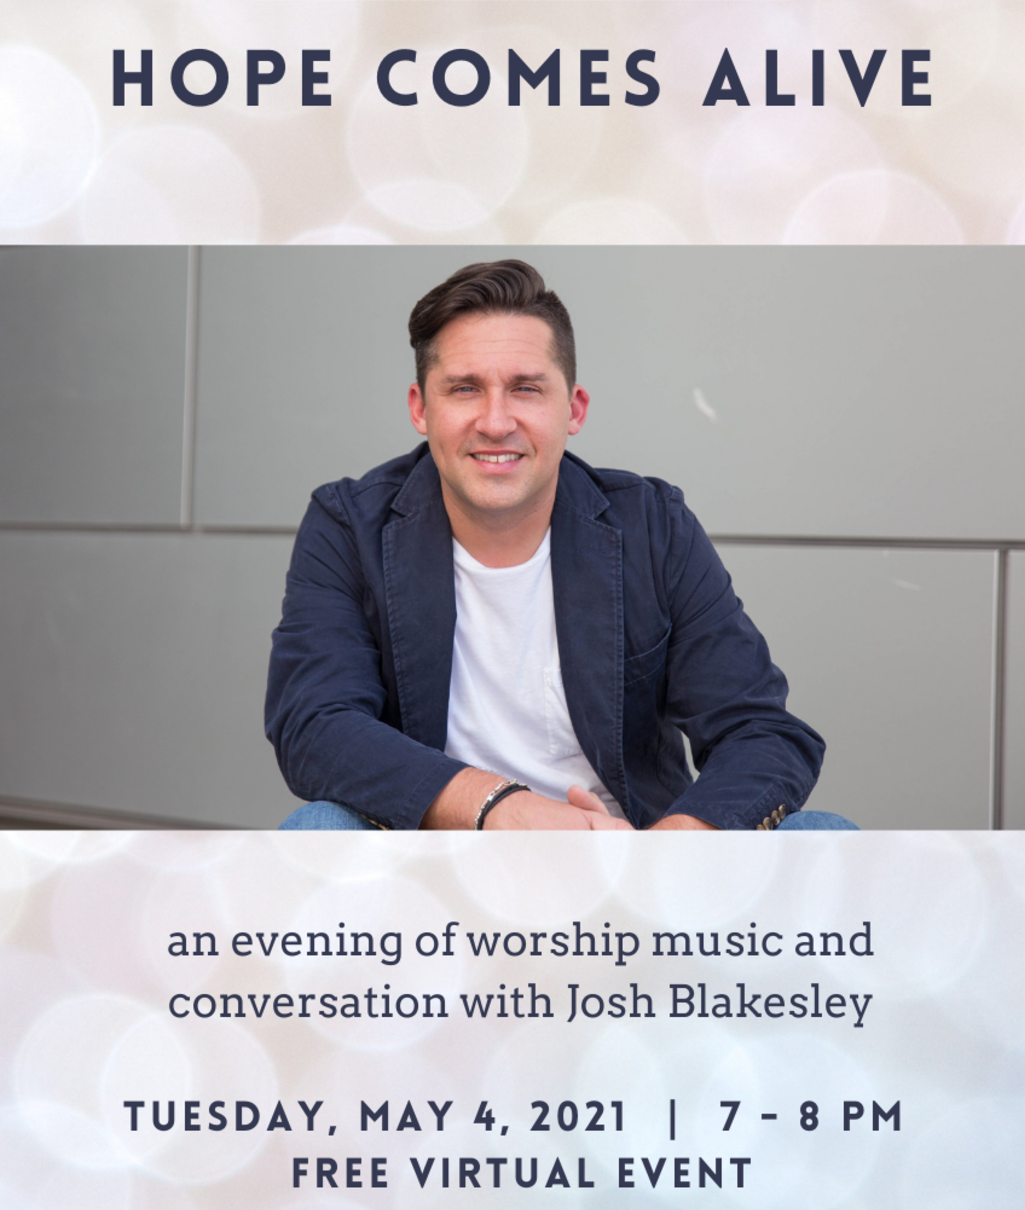 Hope Comes Alive: an evening of worship music and conversation with Josh Blakesley. Tuesday, May 4, 2021, 7-8PM. Free Virtual Event